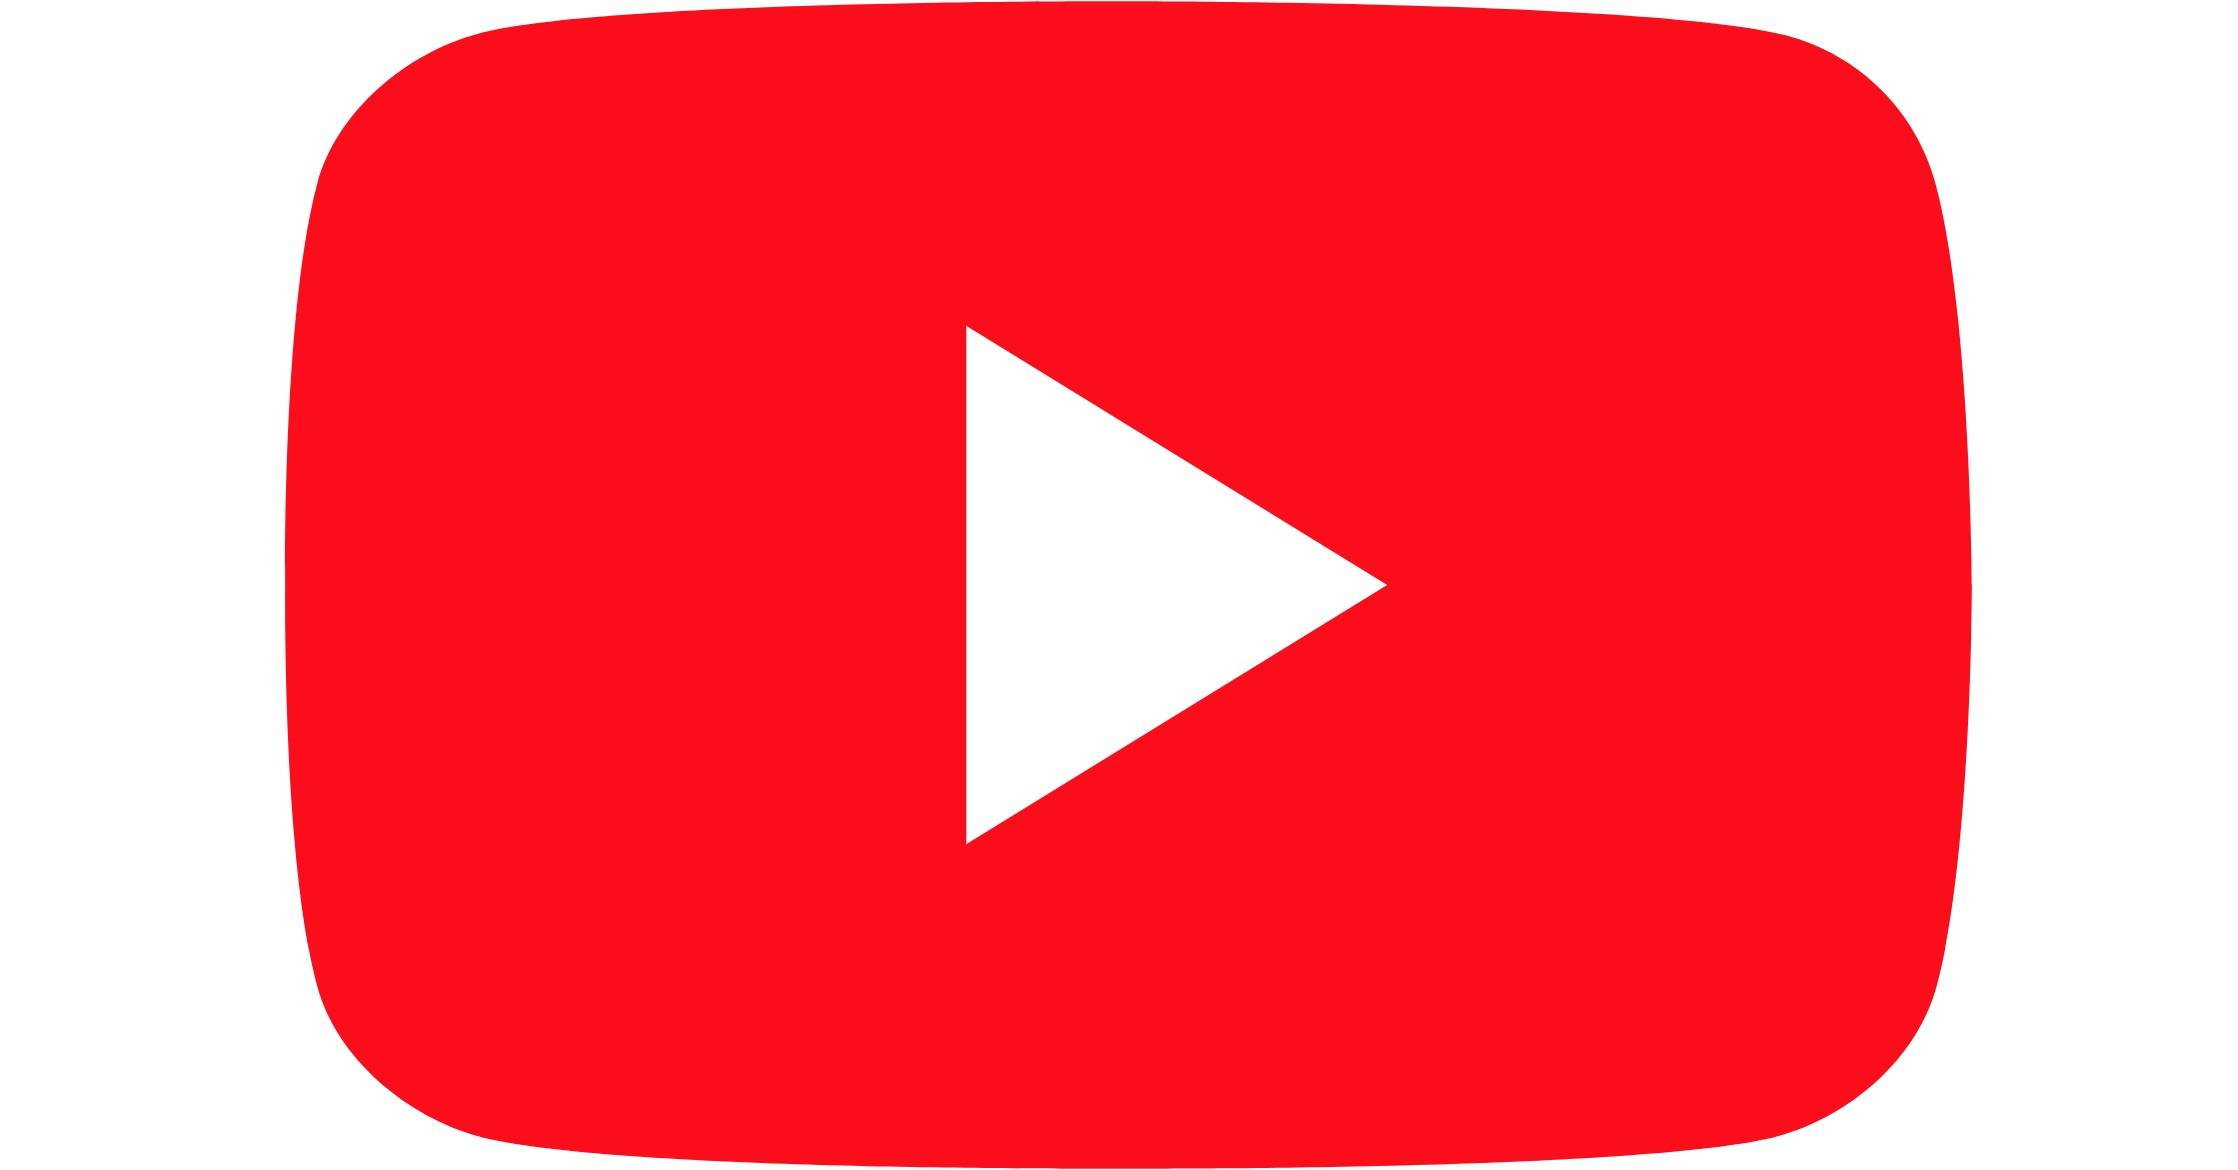 YouTube rumored to be launching a music subscription service.